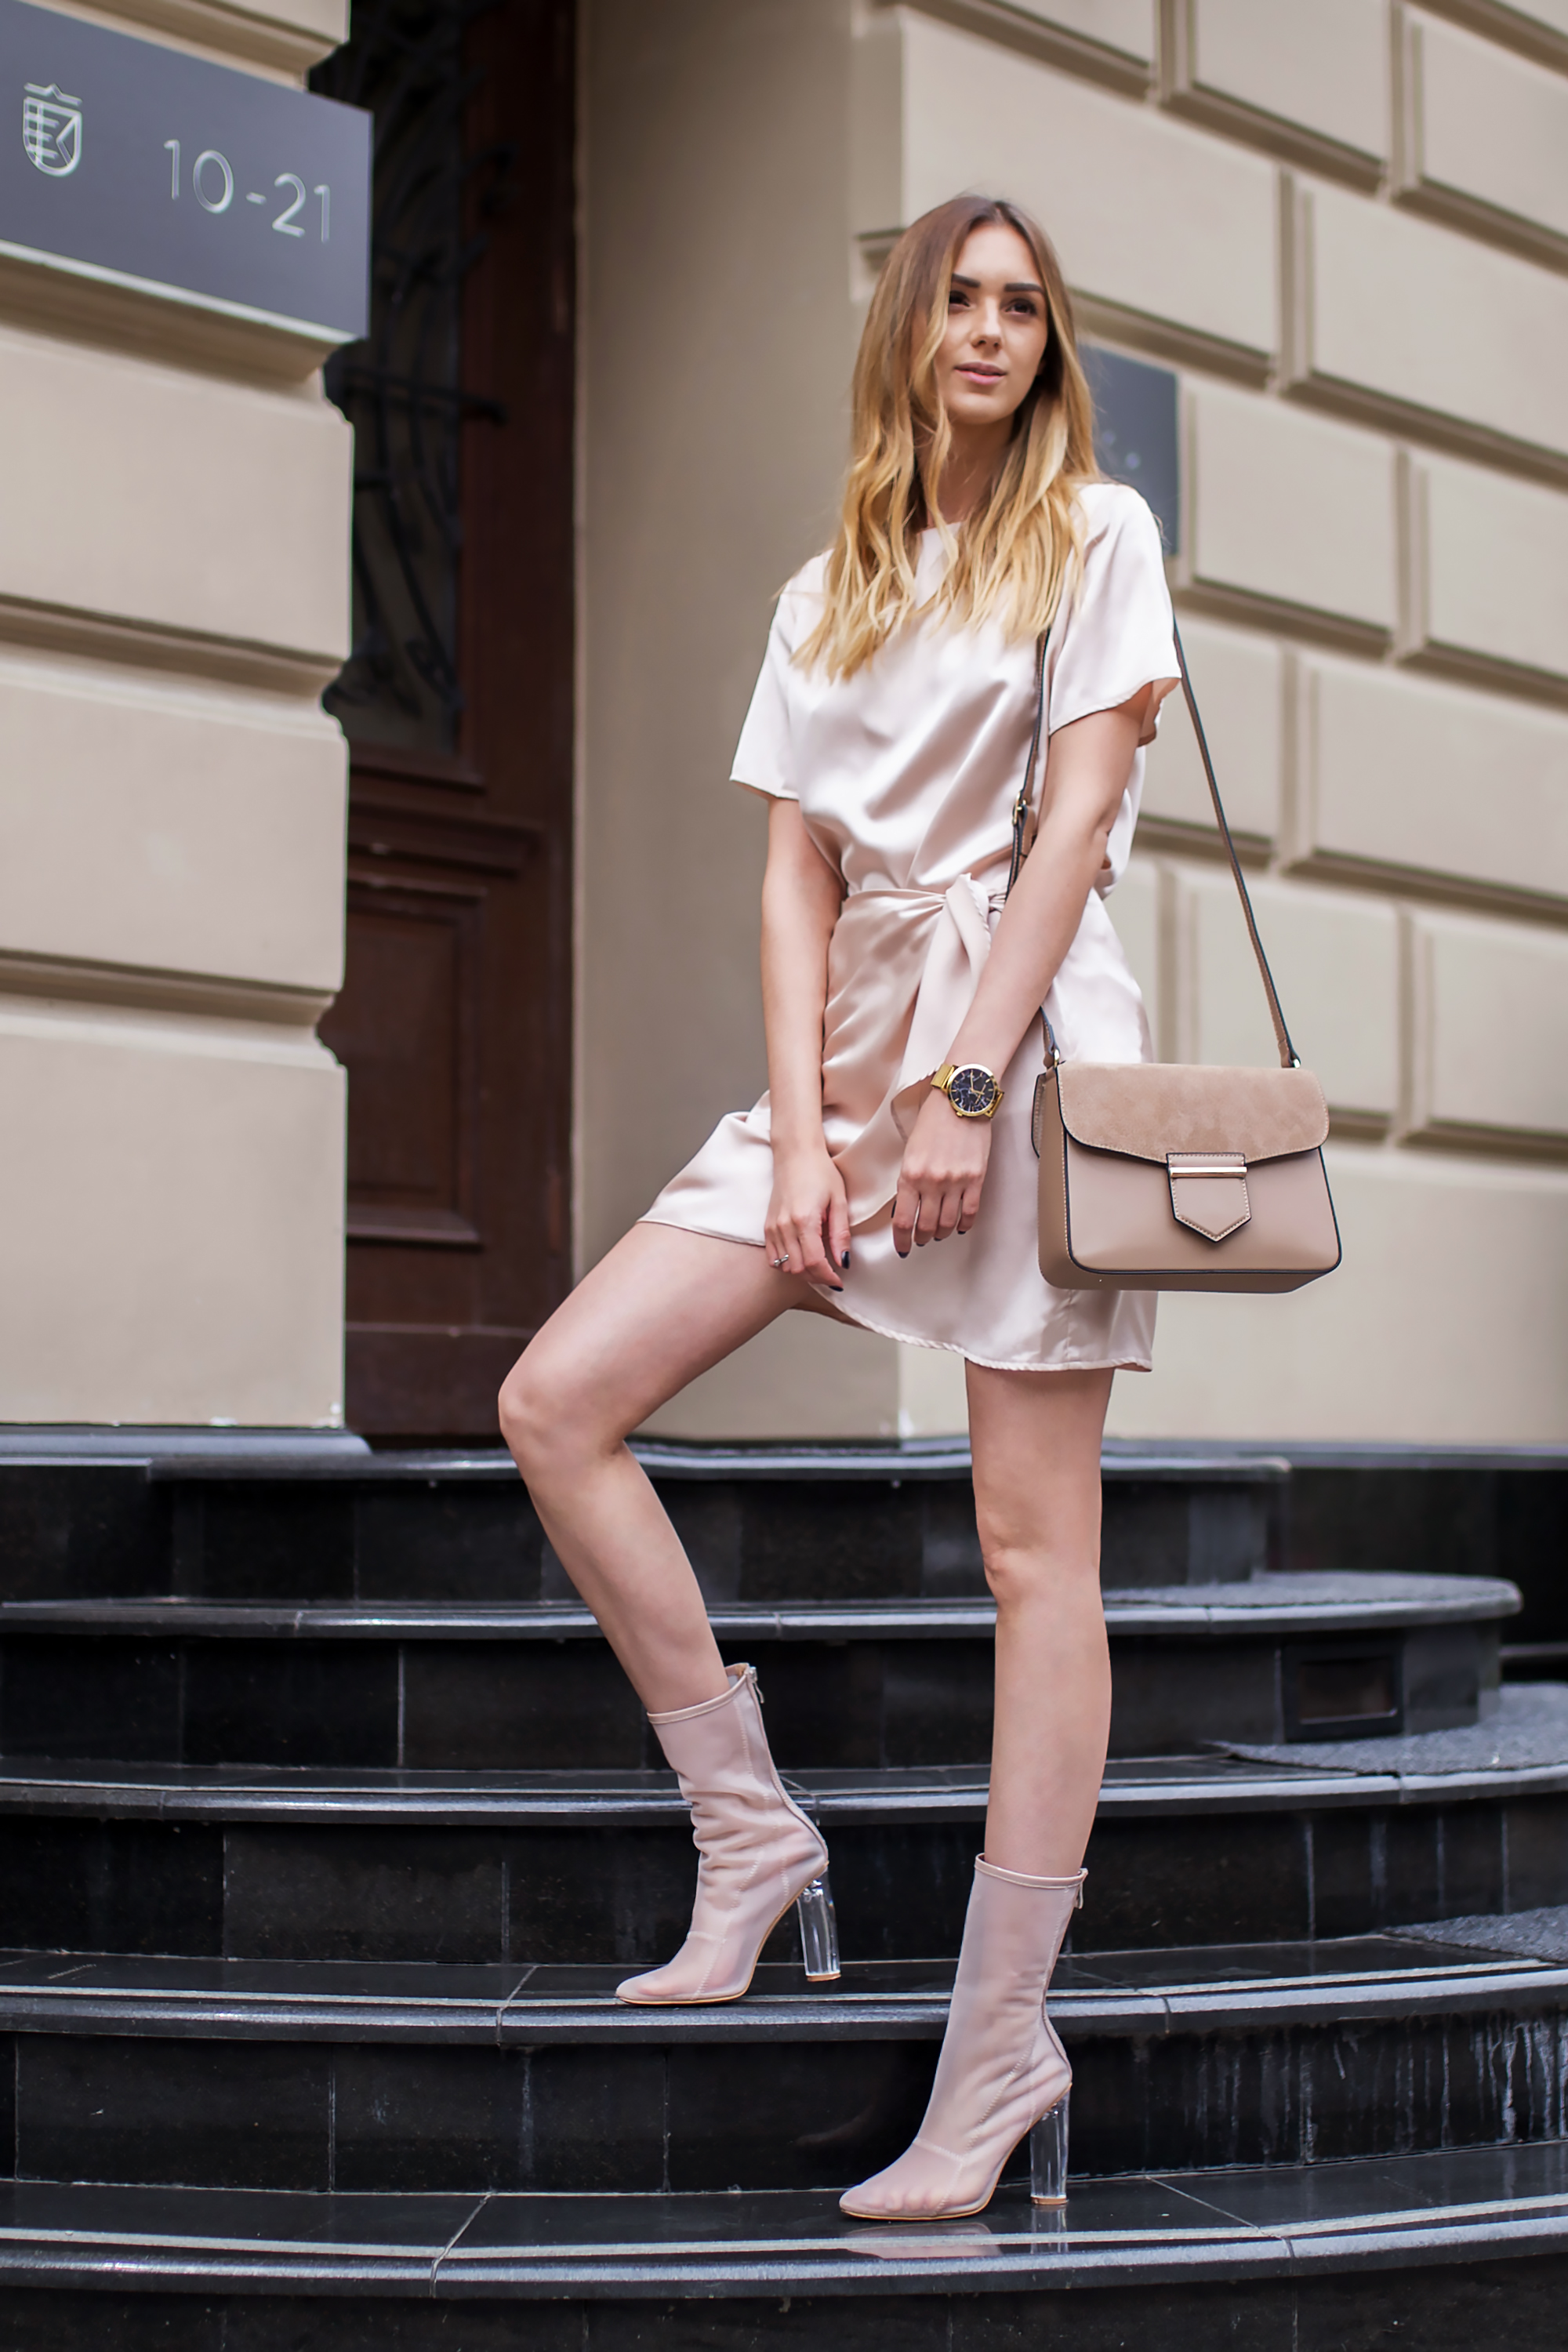 fashion-blogger-clear-boots-mesh